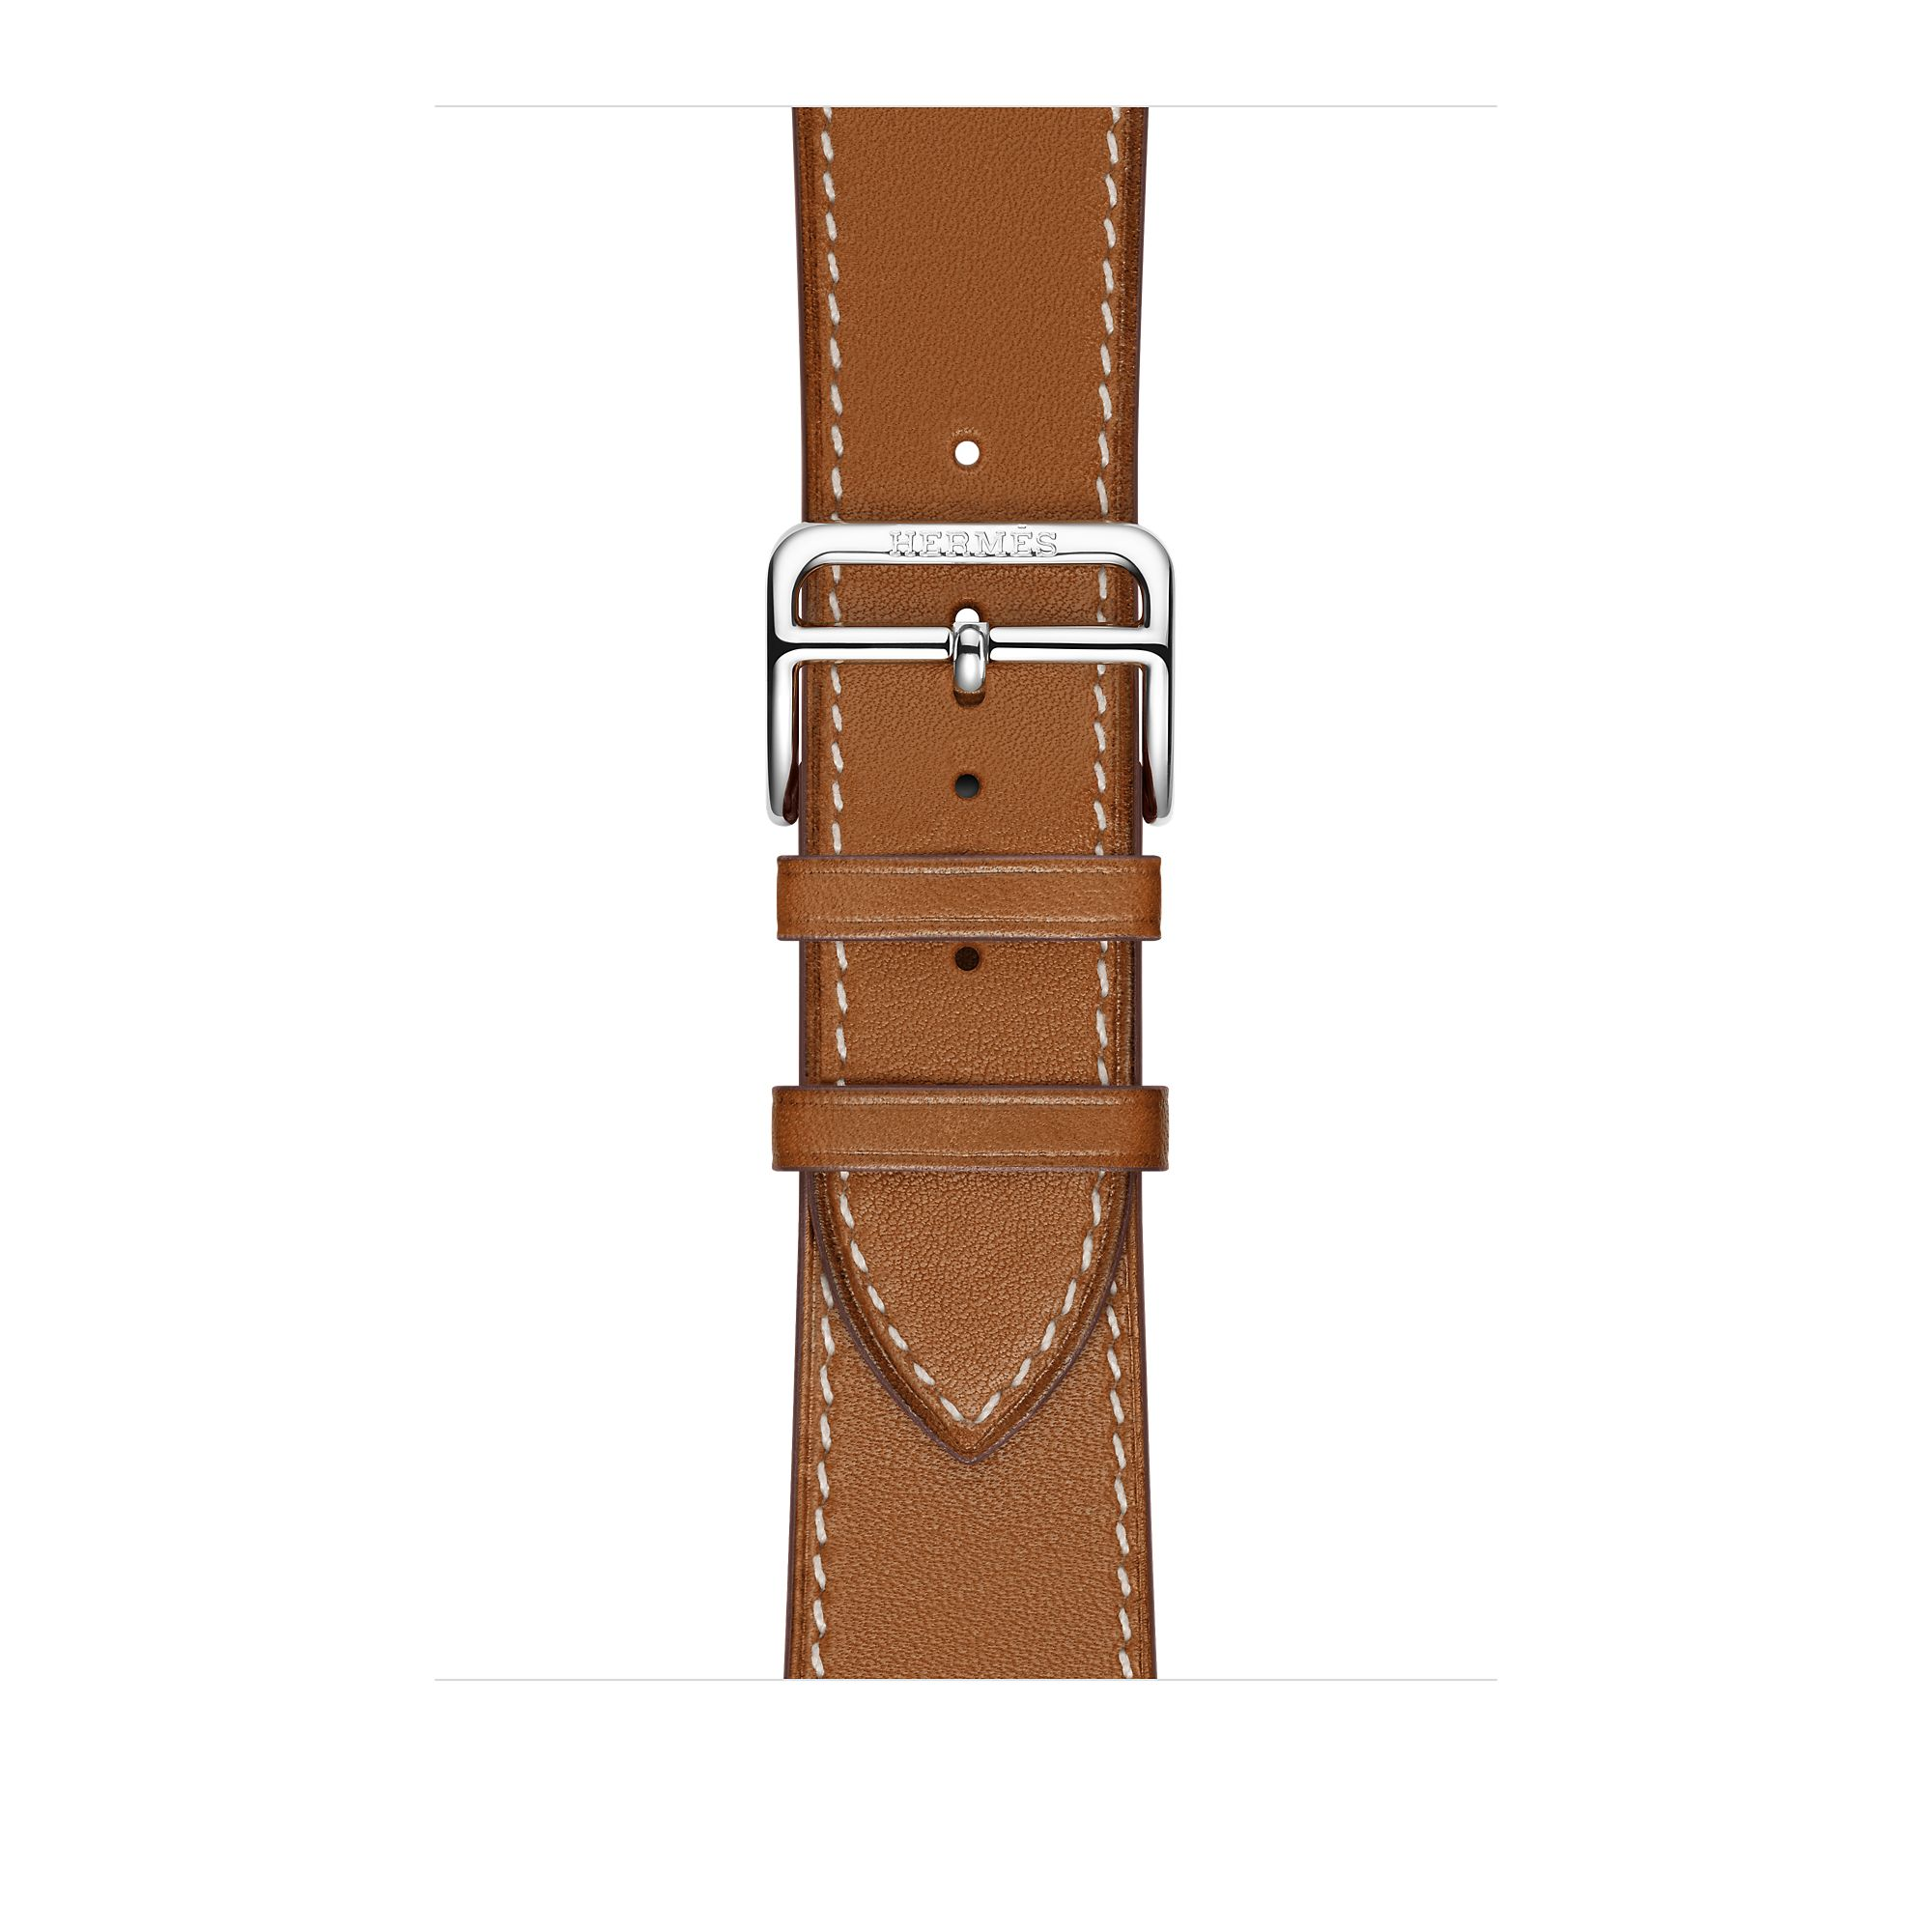 Apple Watch Hermès 42mm Stainless Steel Case with Fauve Barenia Leather Single Tour